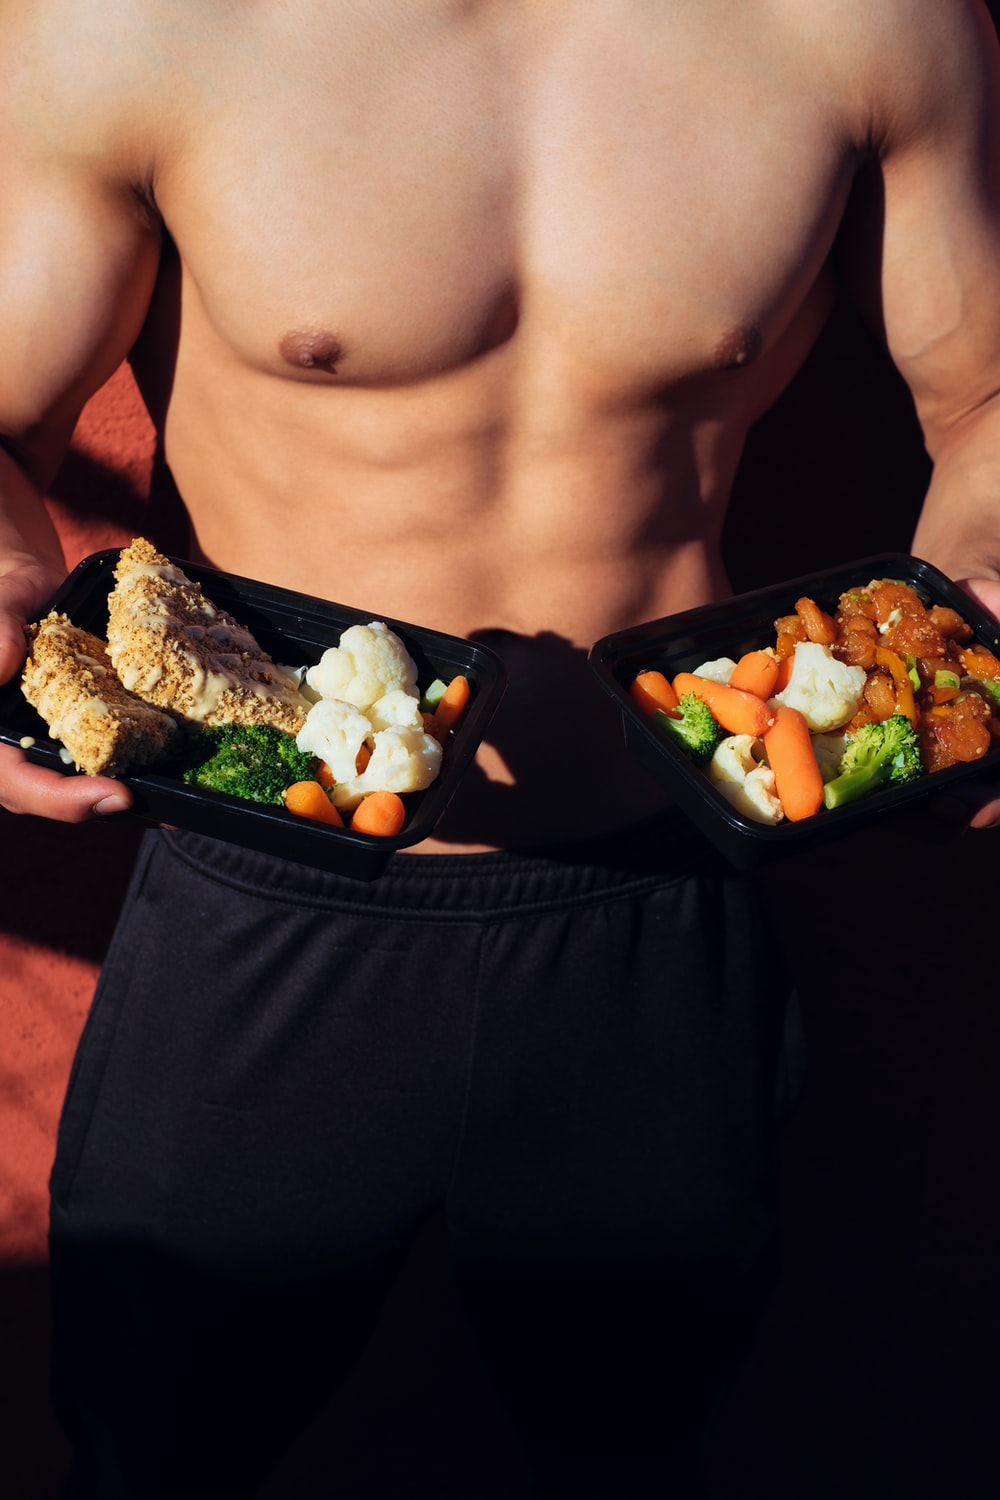 topless man in black shorts holding cooked food